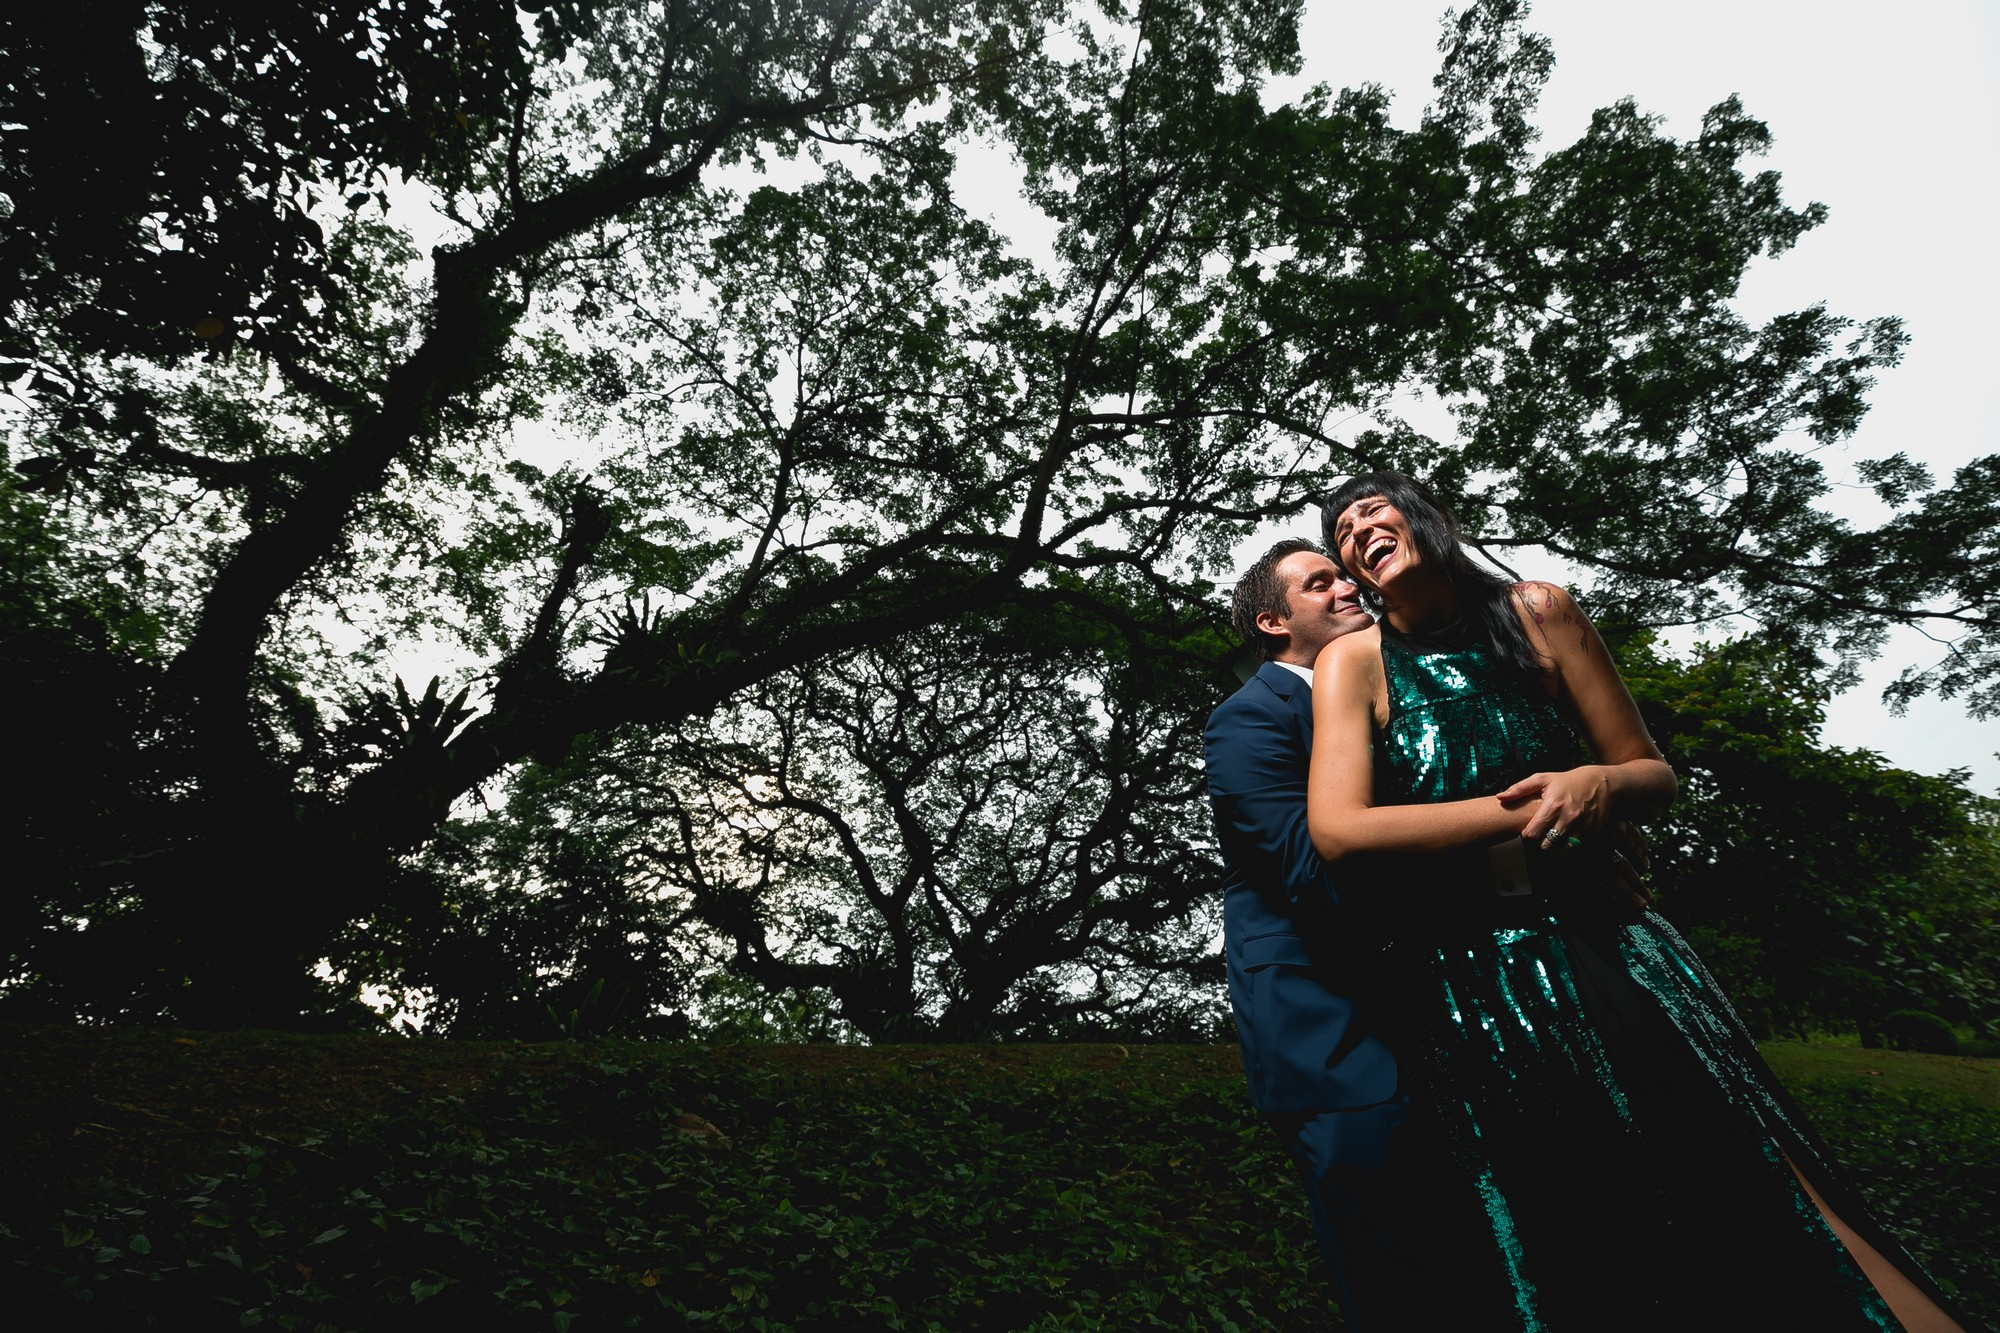 Wedding outdoor photoshoot in Singapore